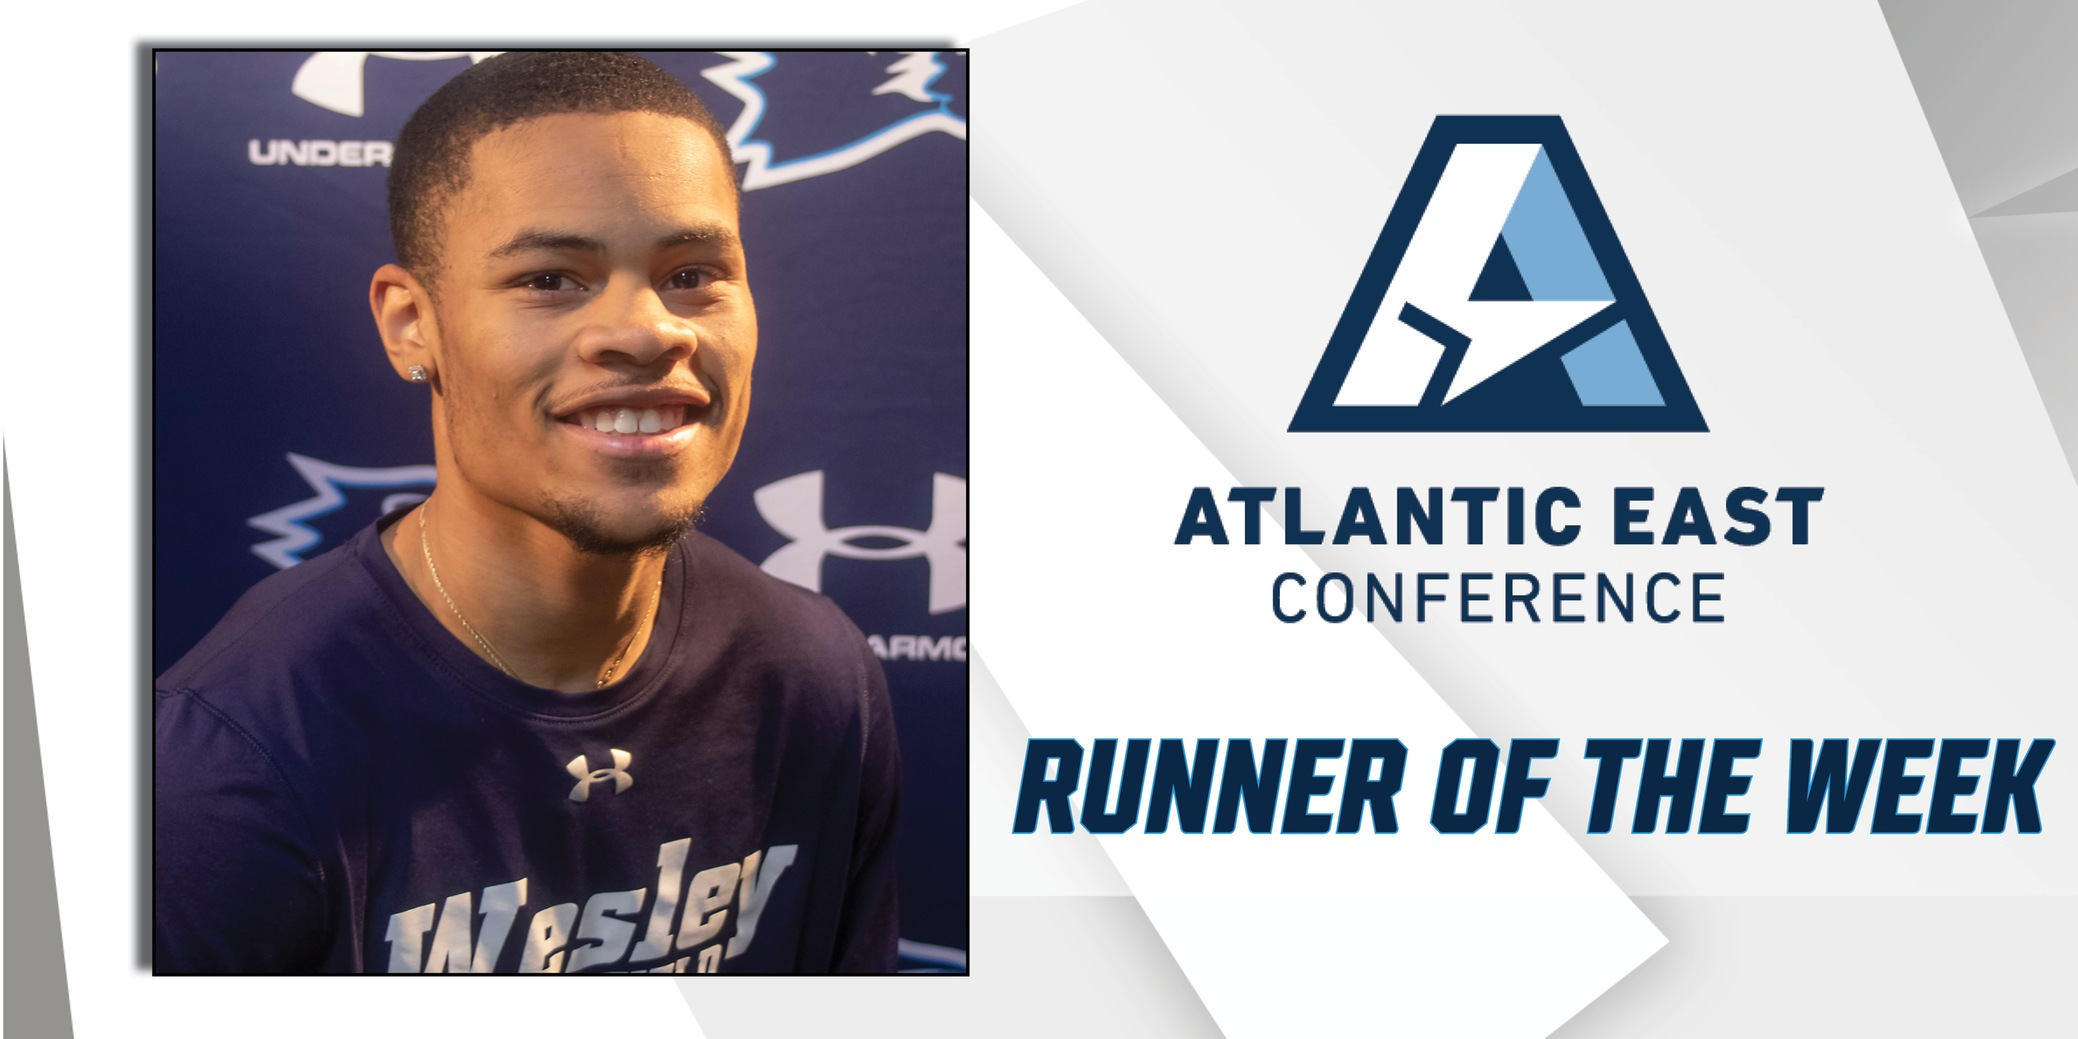 Cole tabbed as Atlantic East Runner of the Week for third time